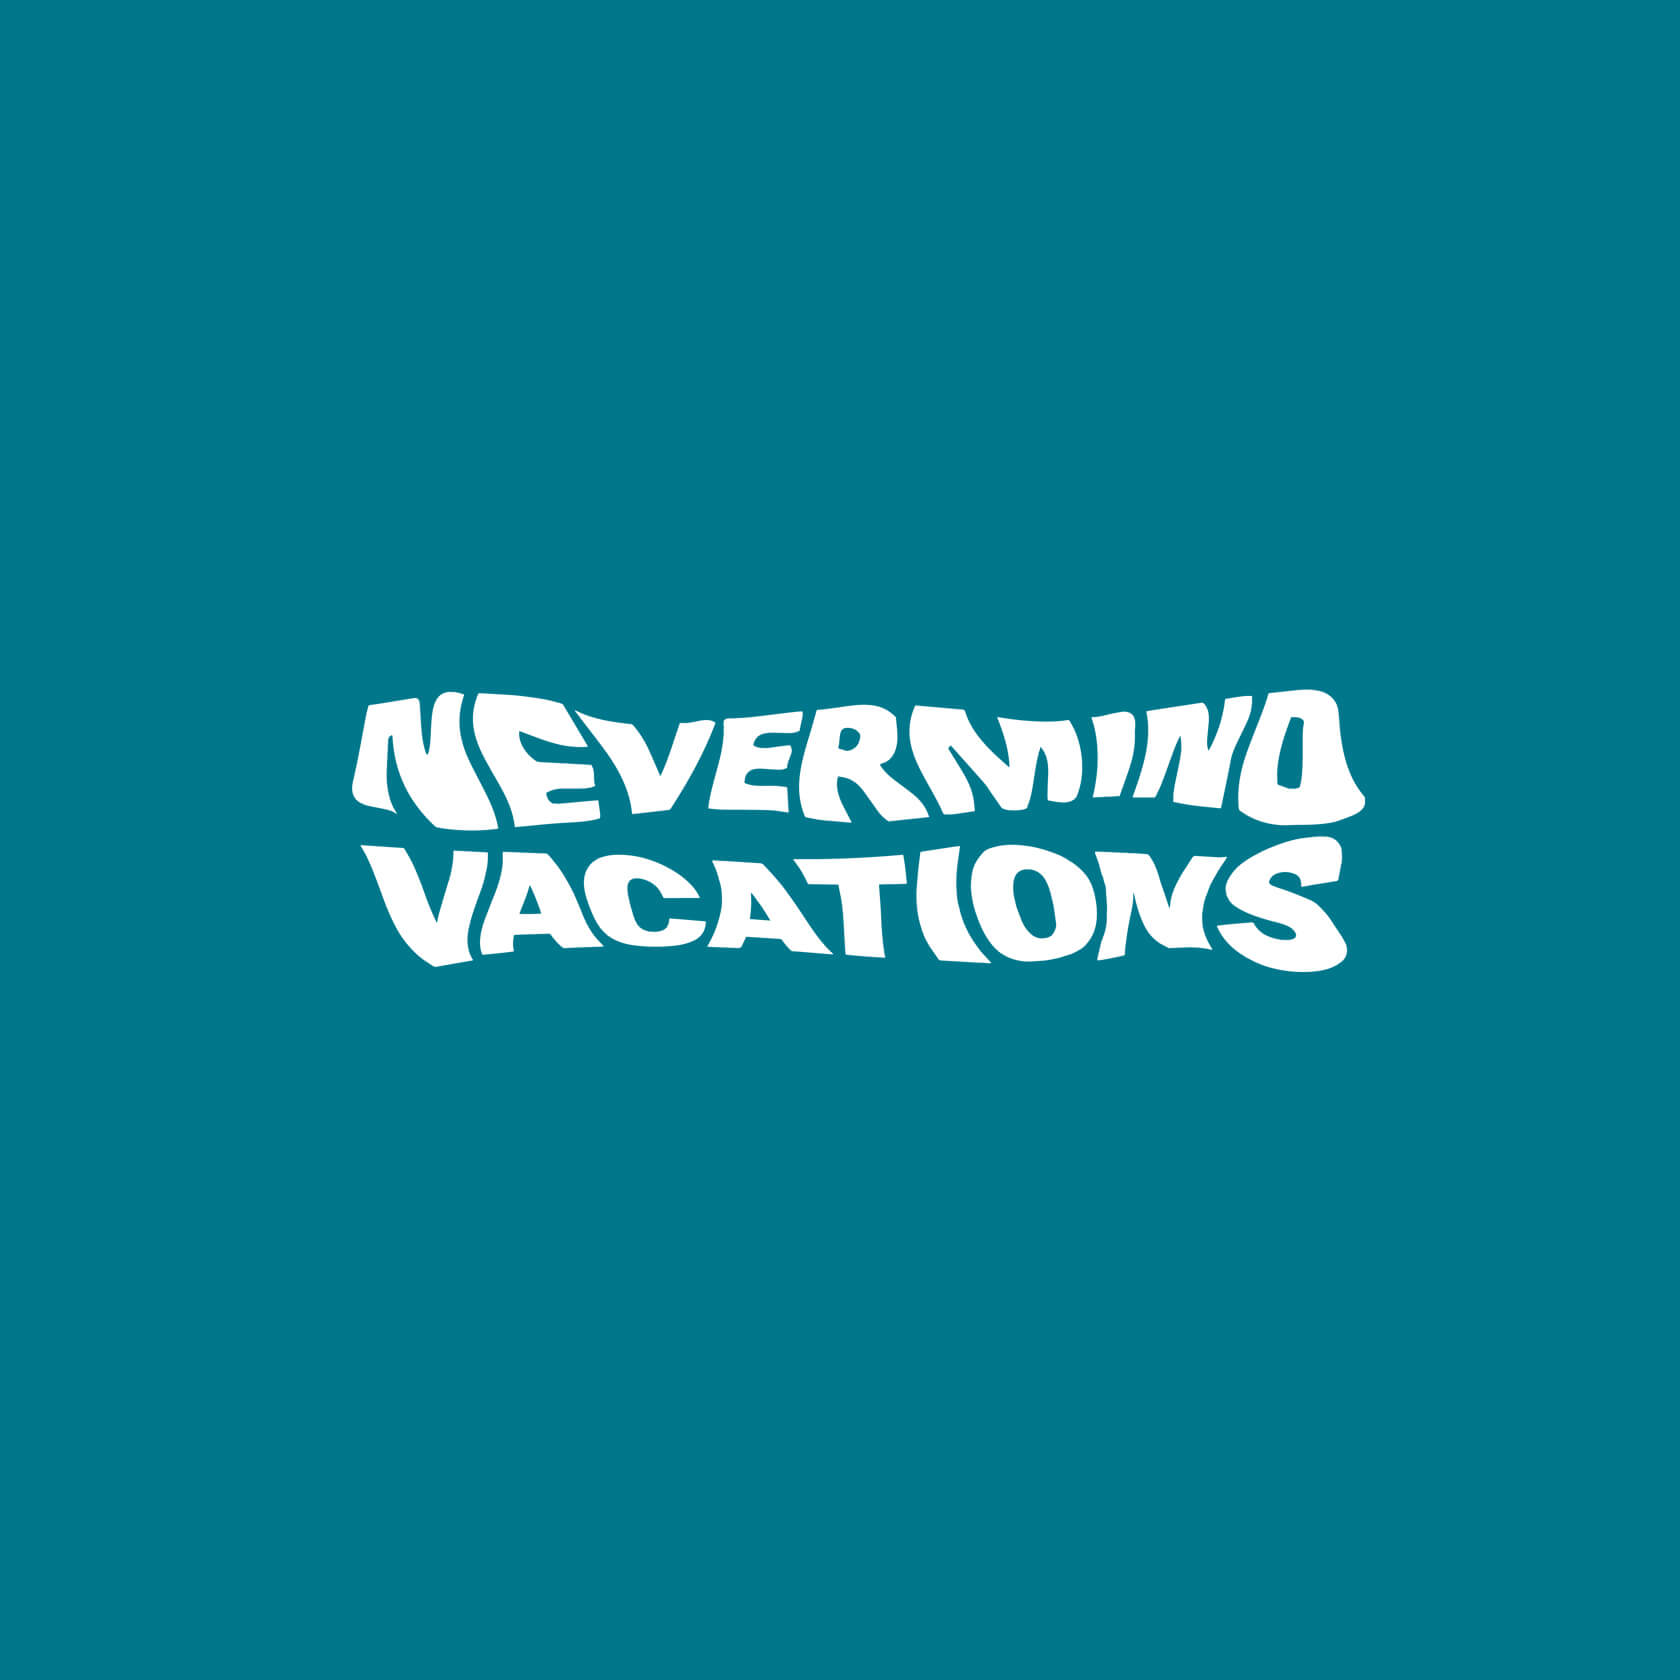 Nevermind Vacations logo